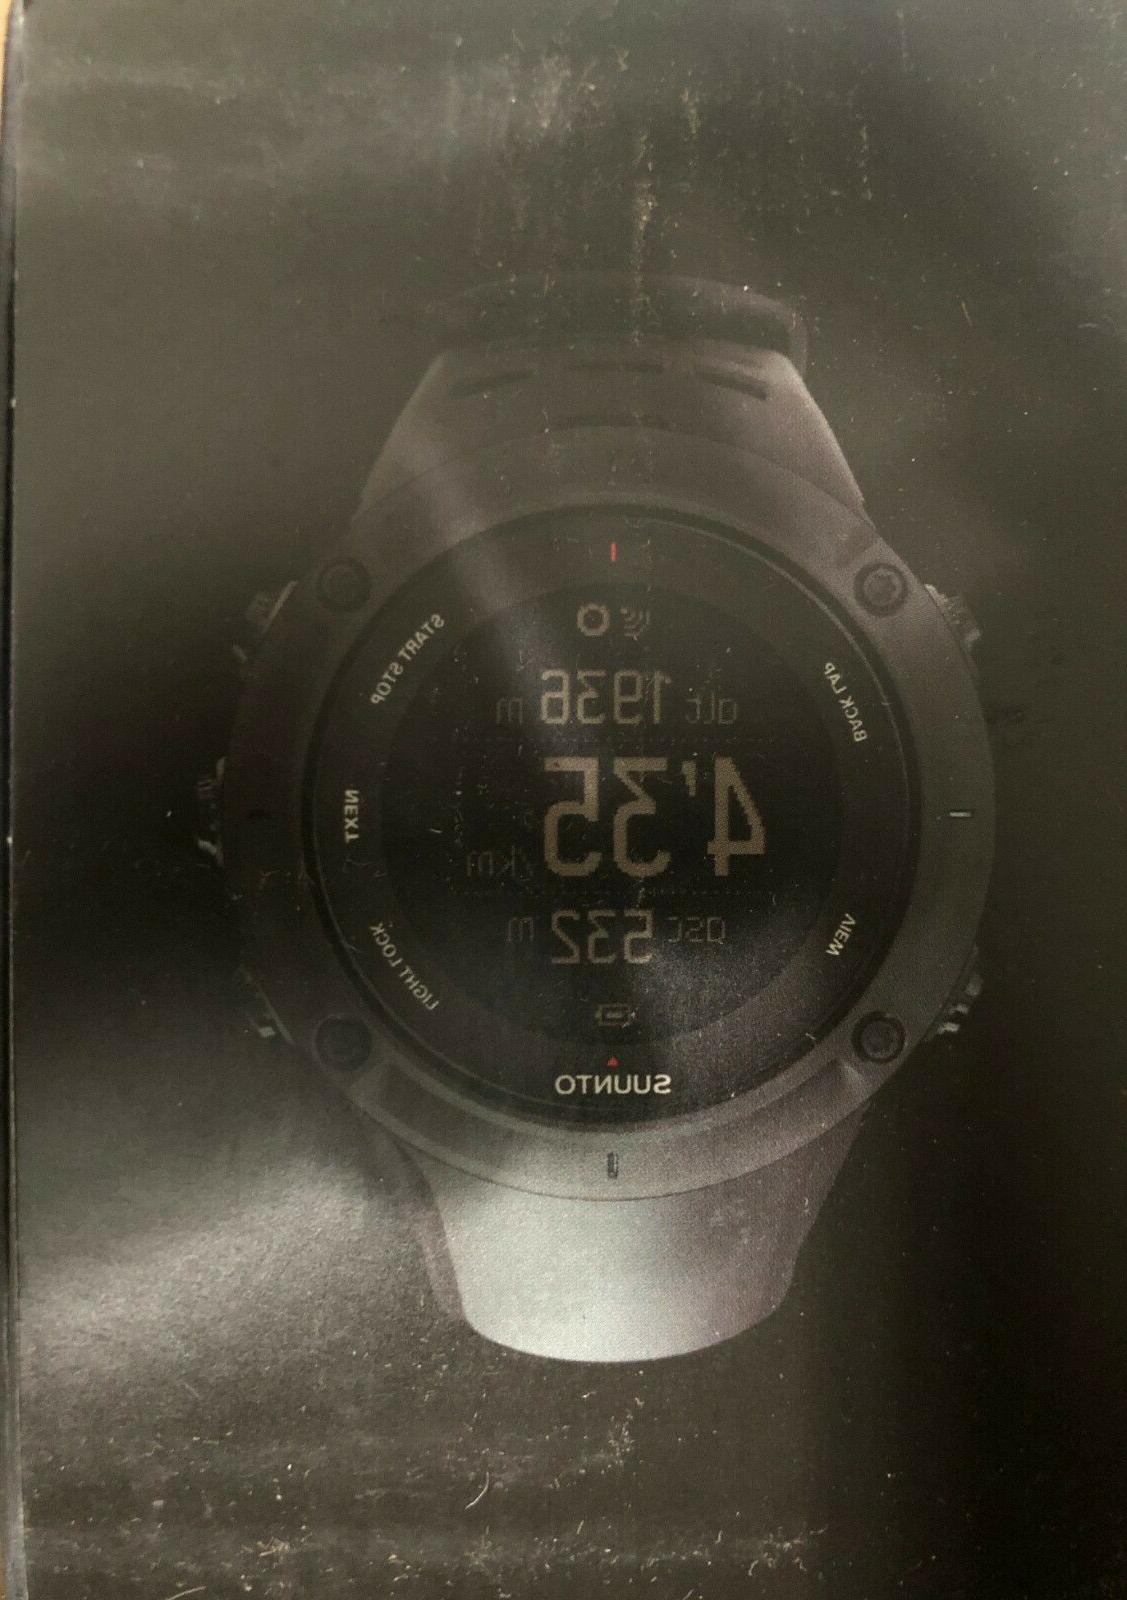 ambit3 peak running gps unit